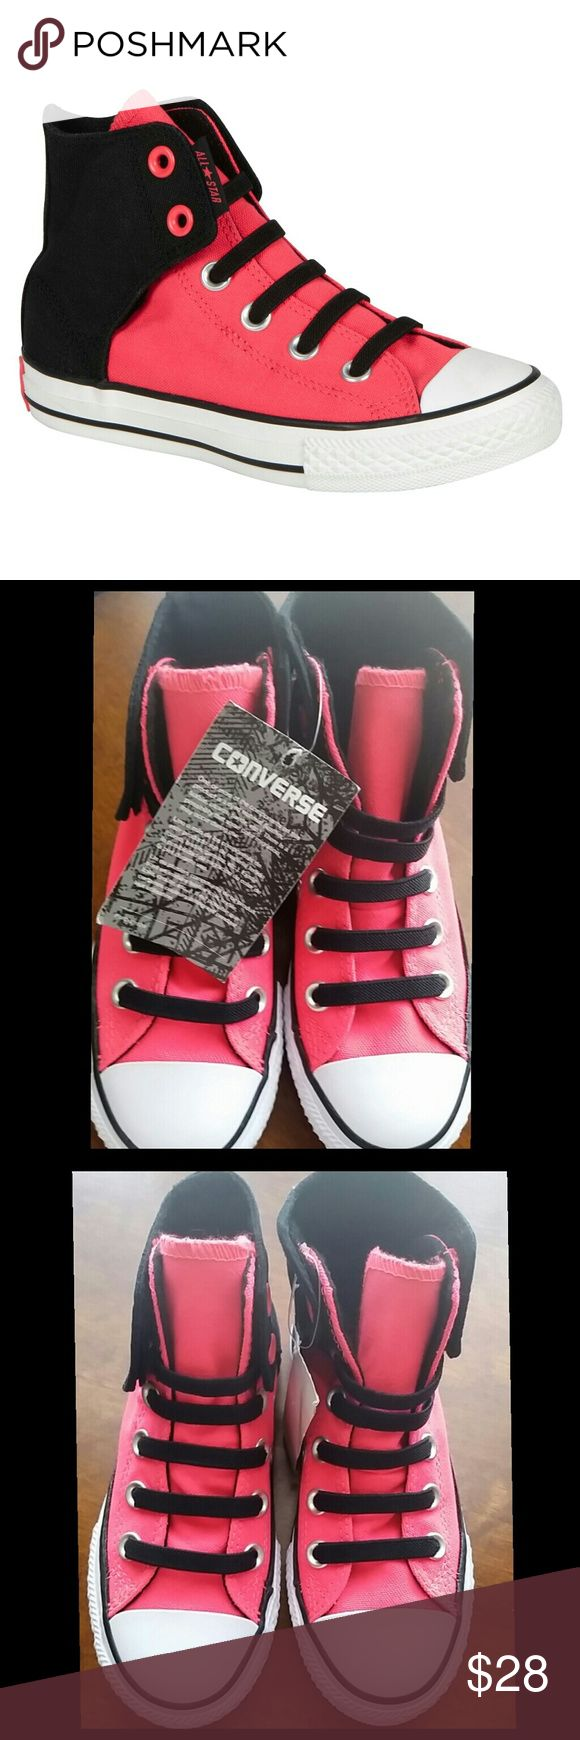 NWT Converse toddler girls sneakers Size 11 Available on Mercari for a better price NWT Converse Shoes Sneakers